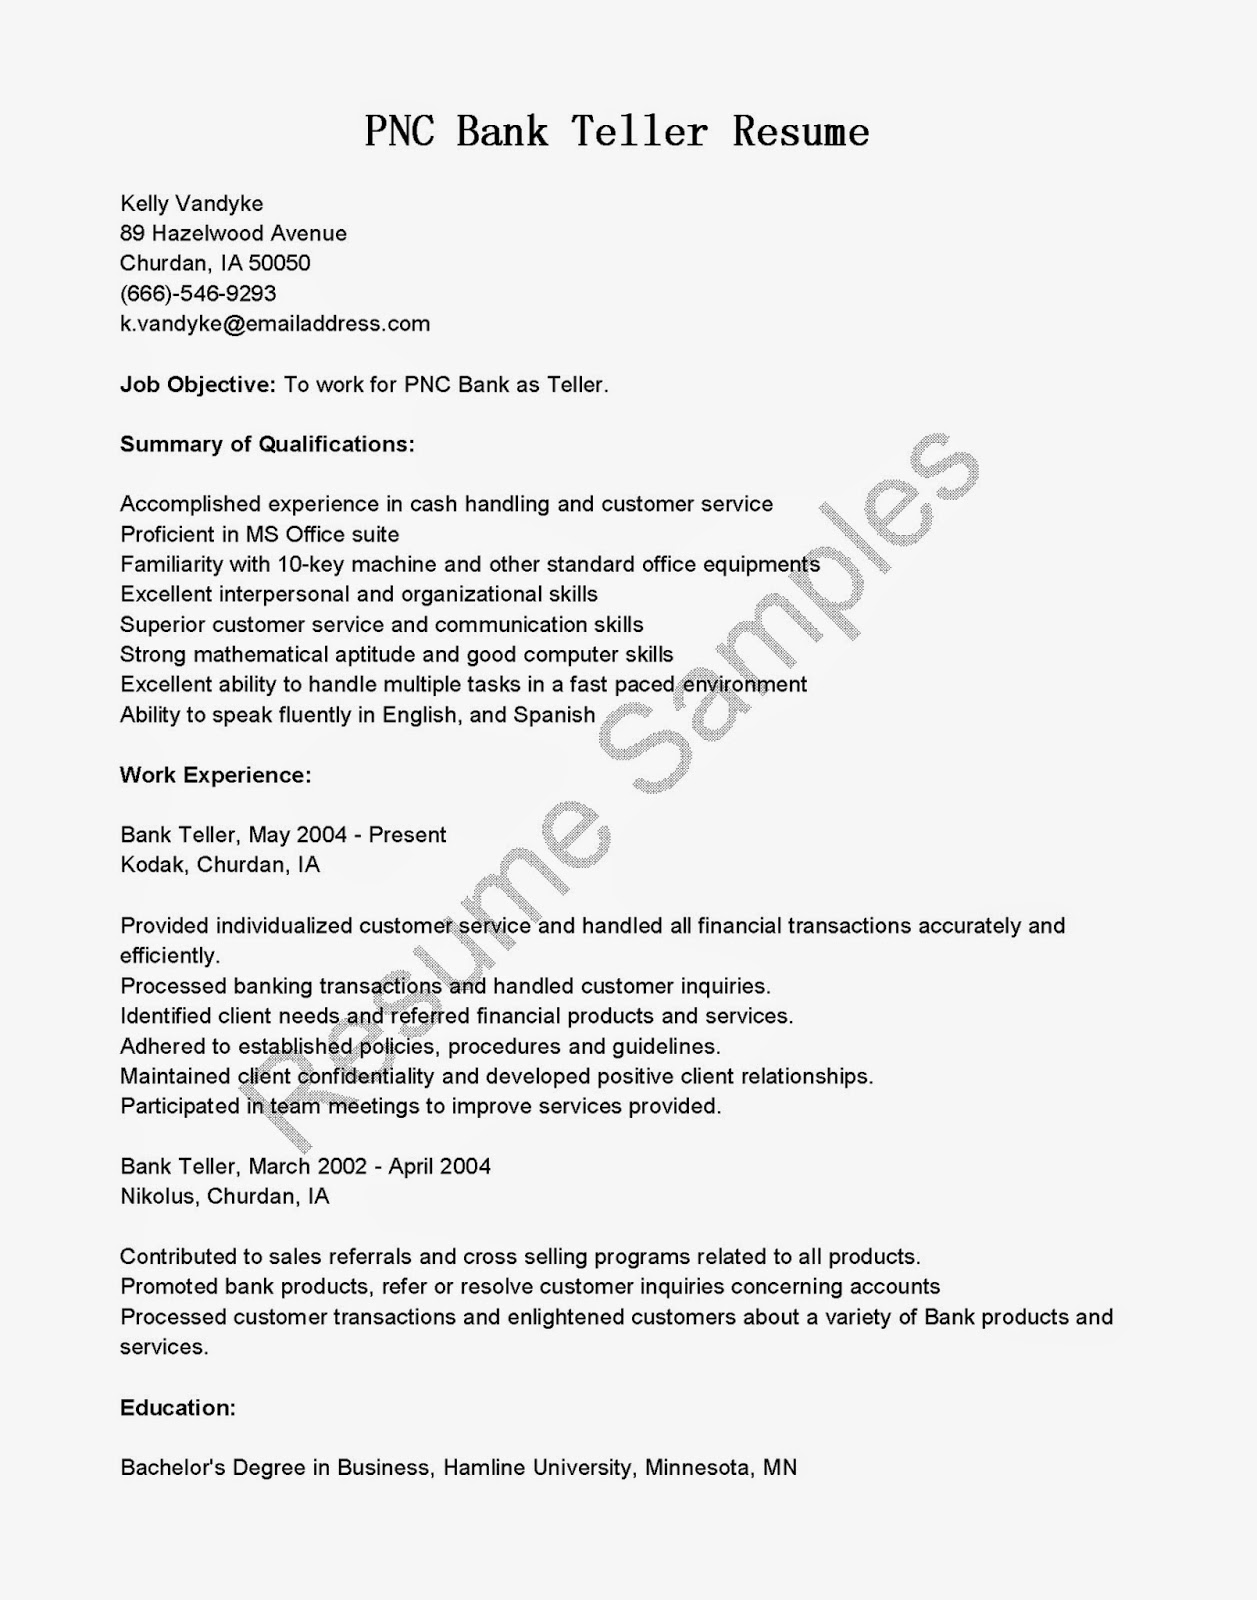 Cover Letter For A Banking Job Image Collections Cover Letter Ideas